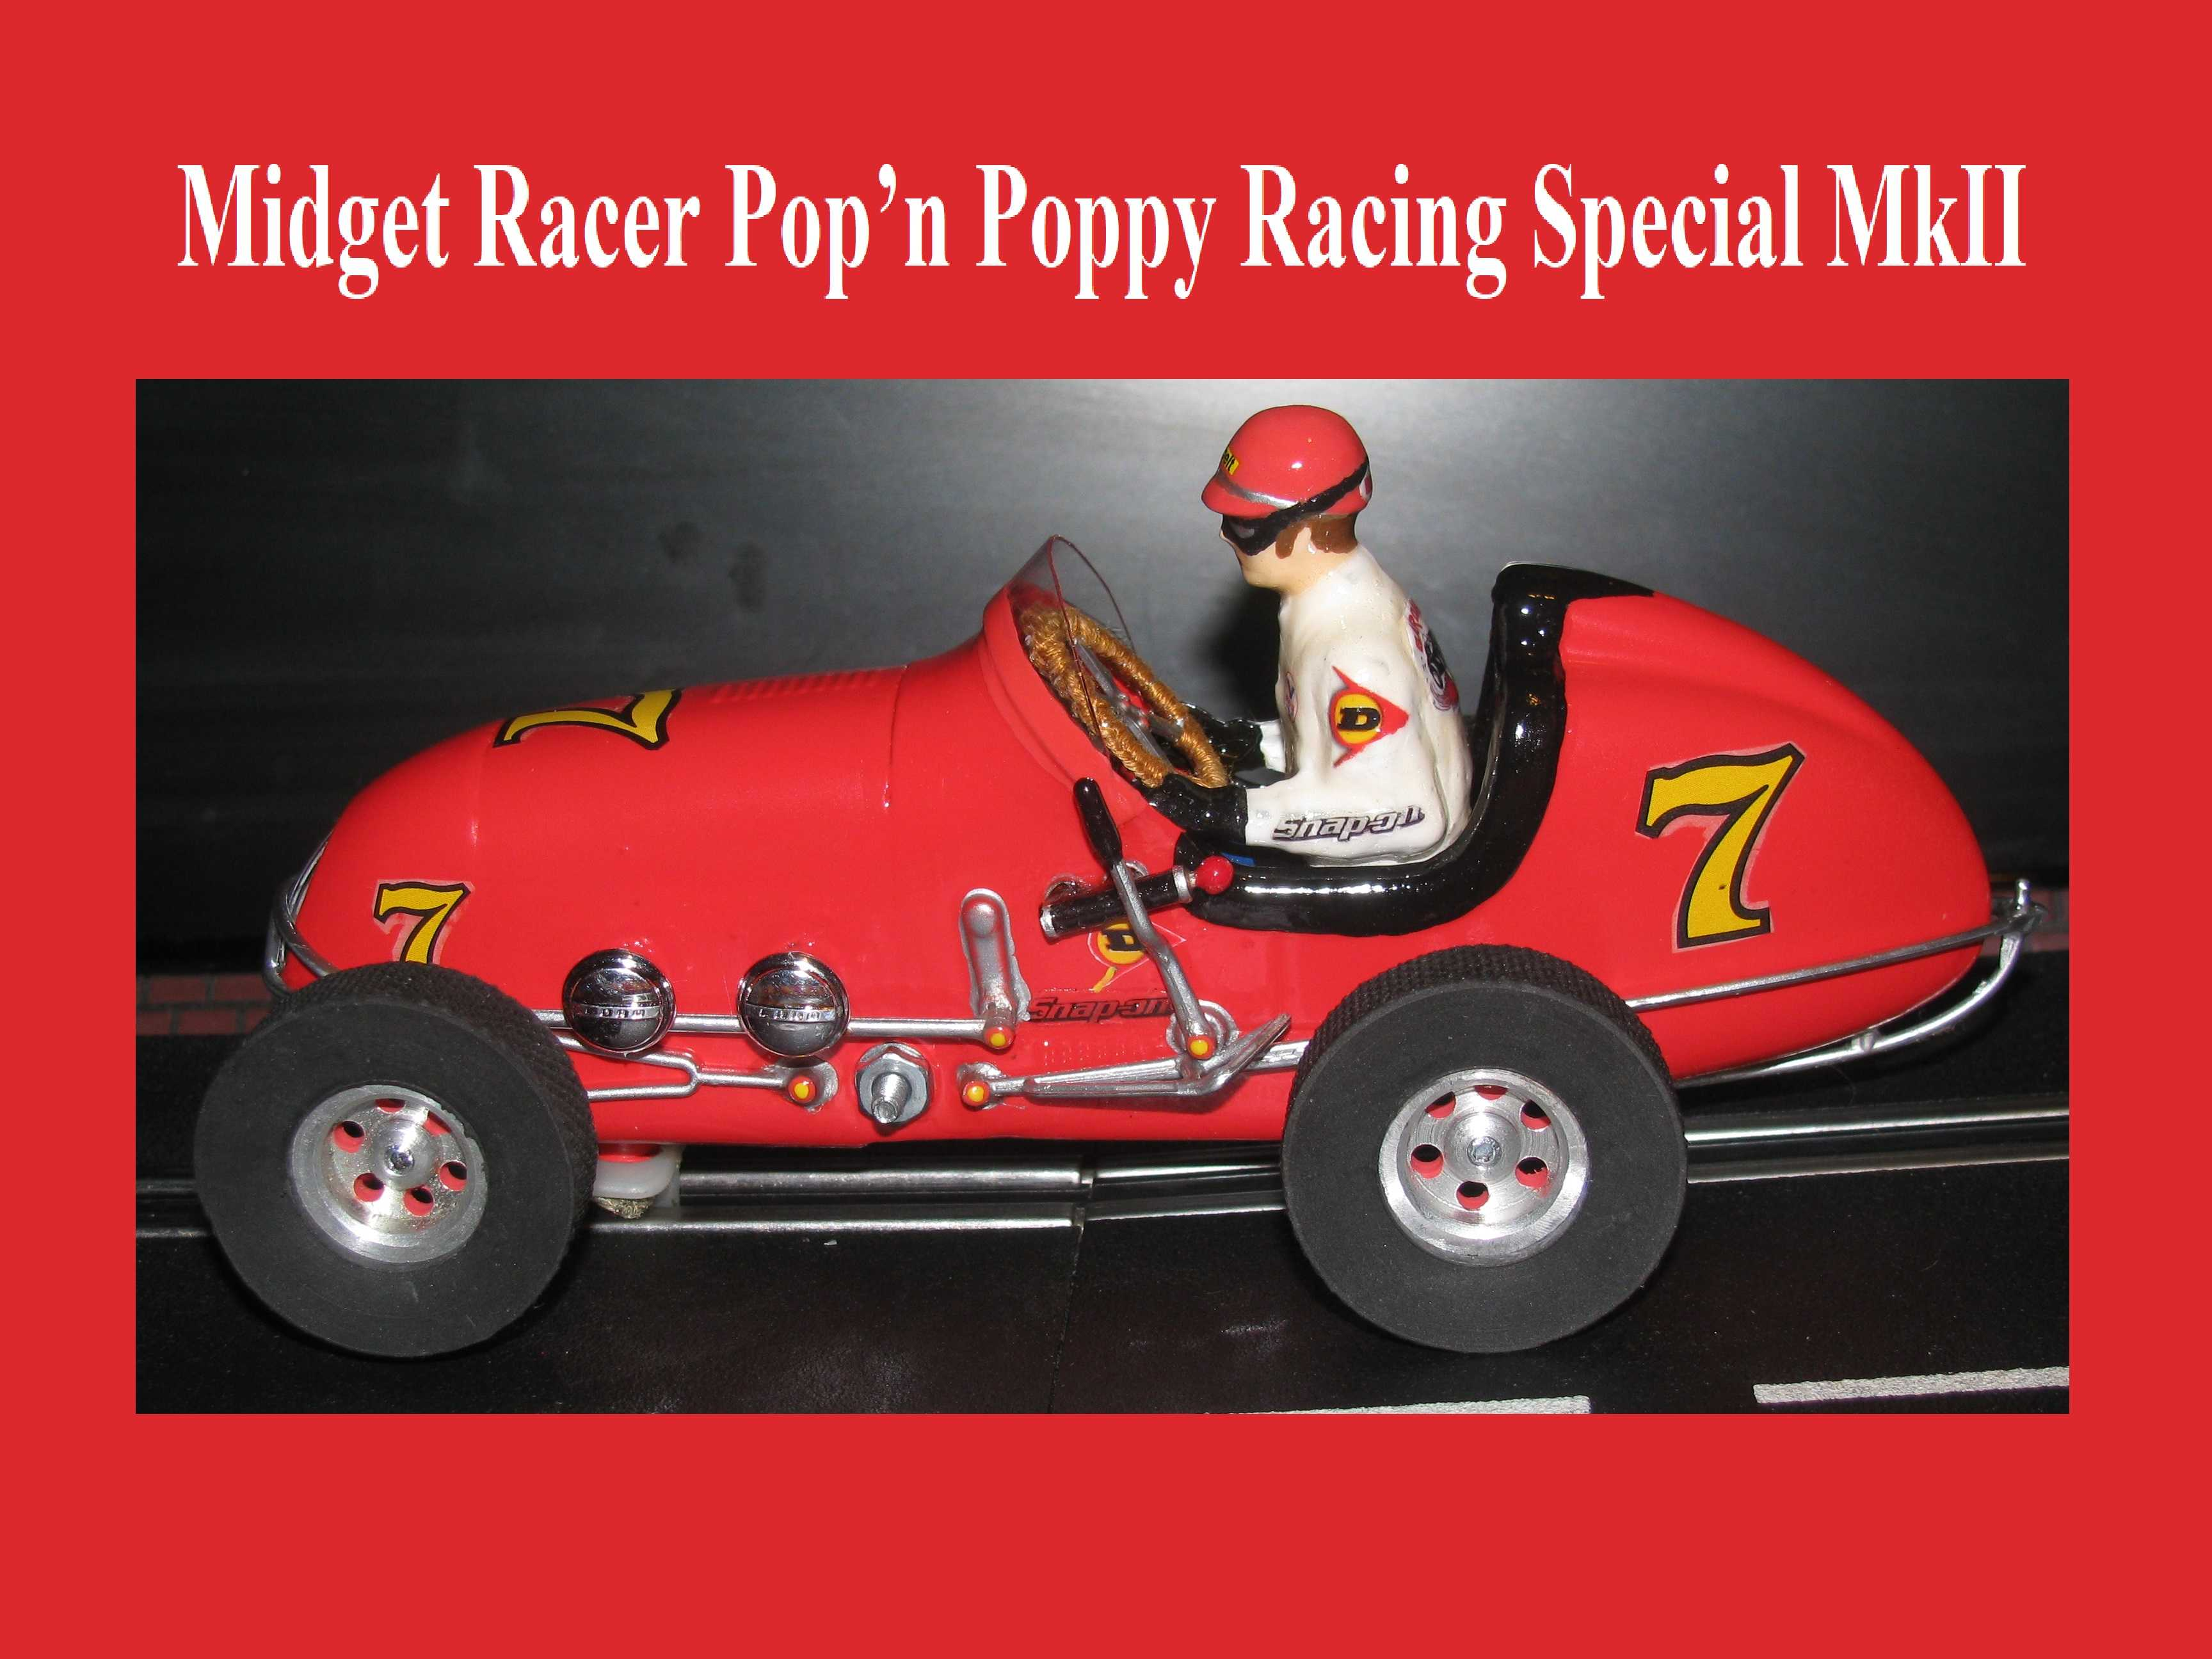 * SOLD * * SALE * Monogram Midget Racer Dunlop Racing Special MkII Slot Car 1/24 Scale (Poppy Seed Red Satin)